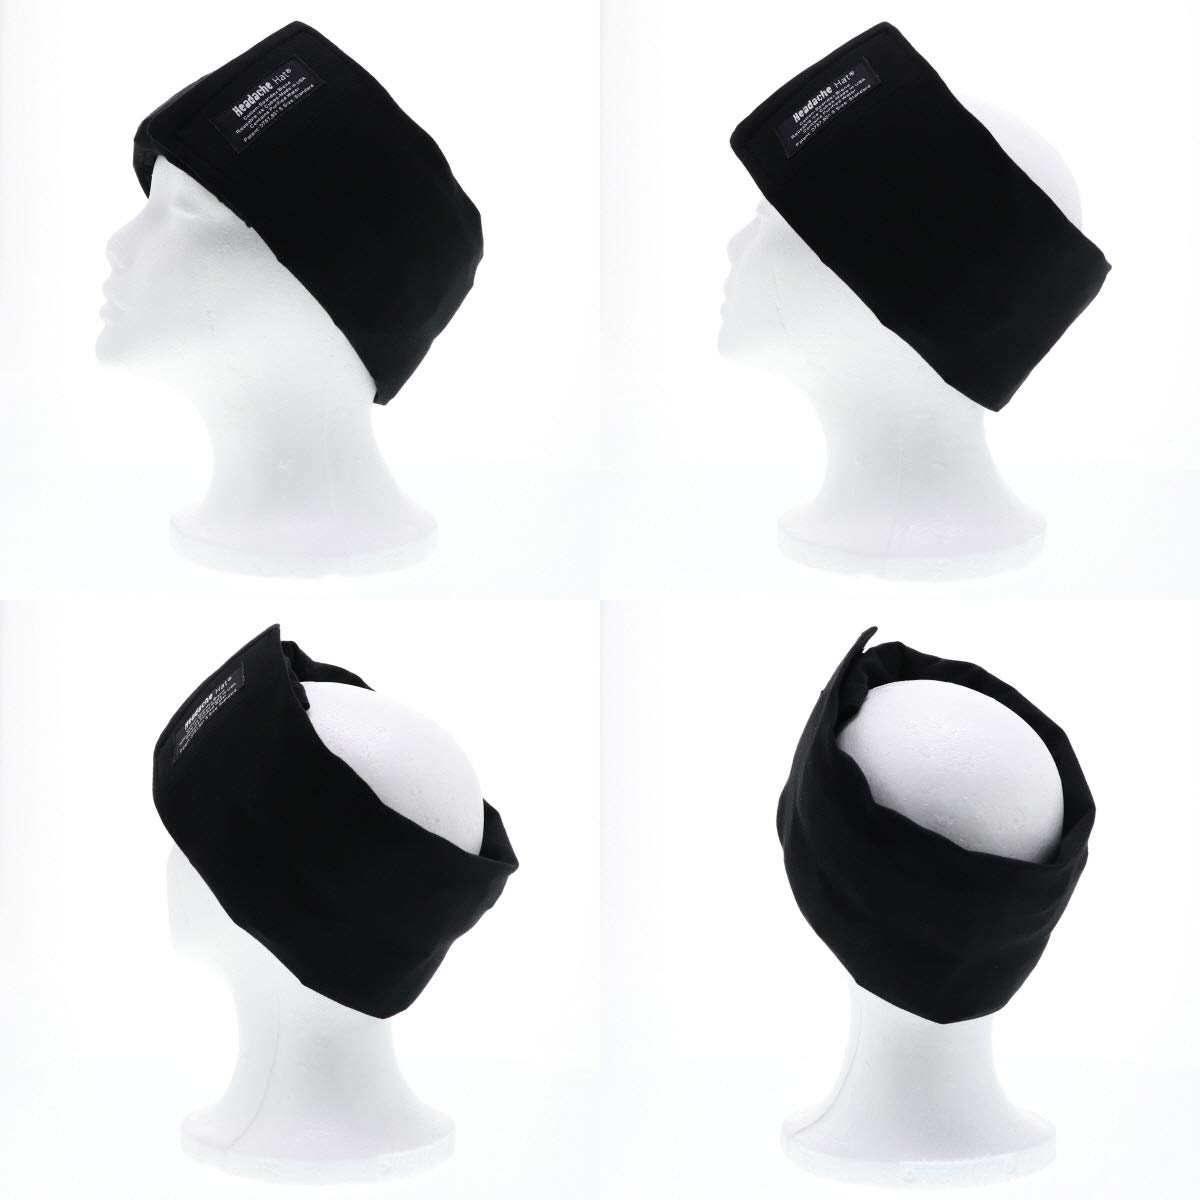 Headache Hat - The Original Wearable Ice Pack for Migraine Headaches and Tension Relief - Regular Size by Headache Hat